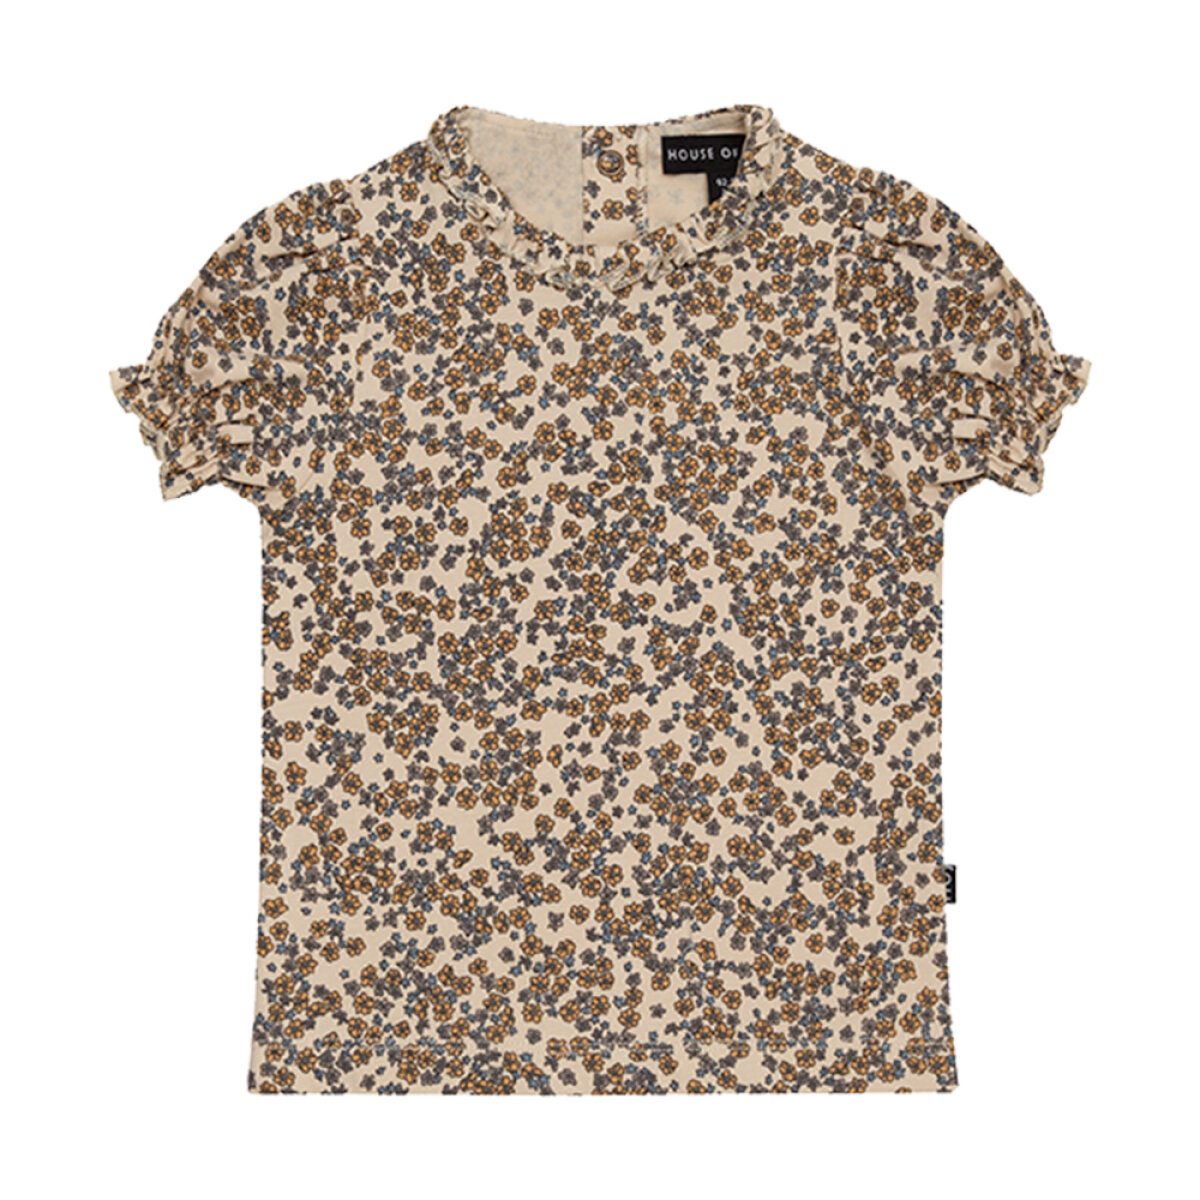 House Of Jamie meisjes shirt 04240524 beige